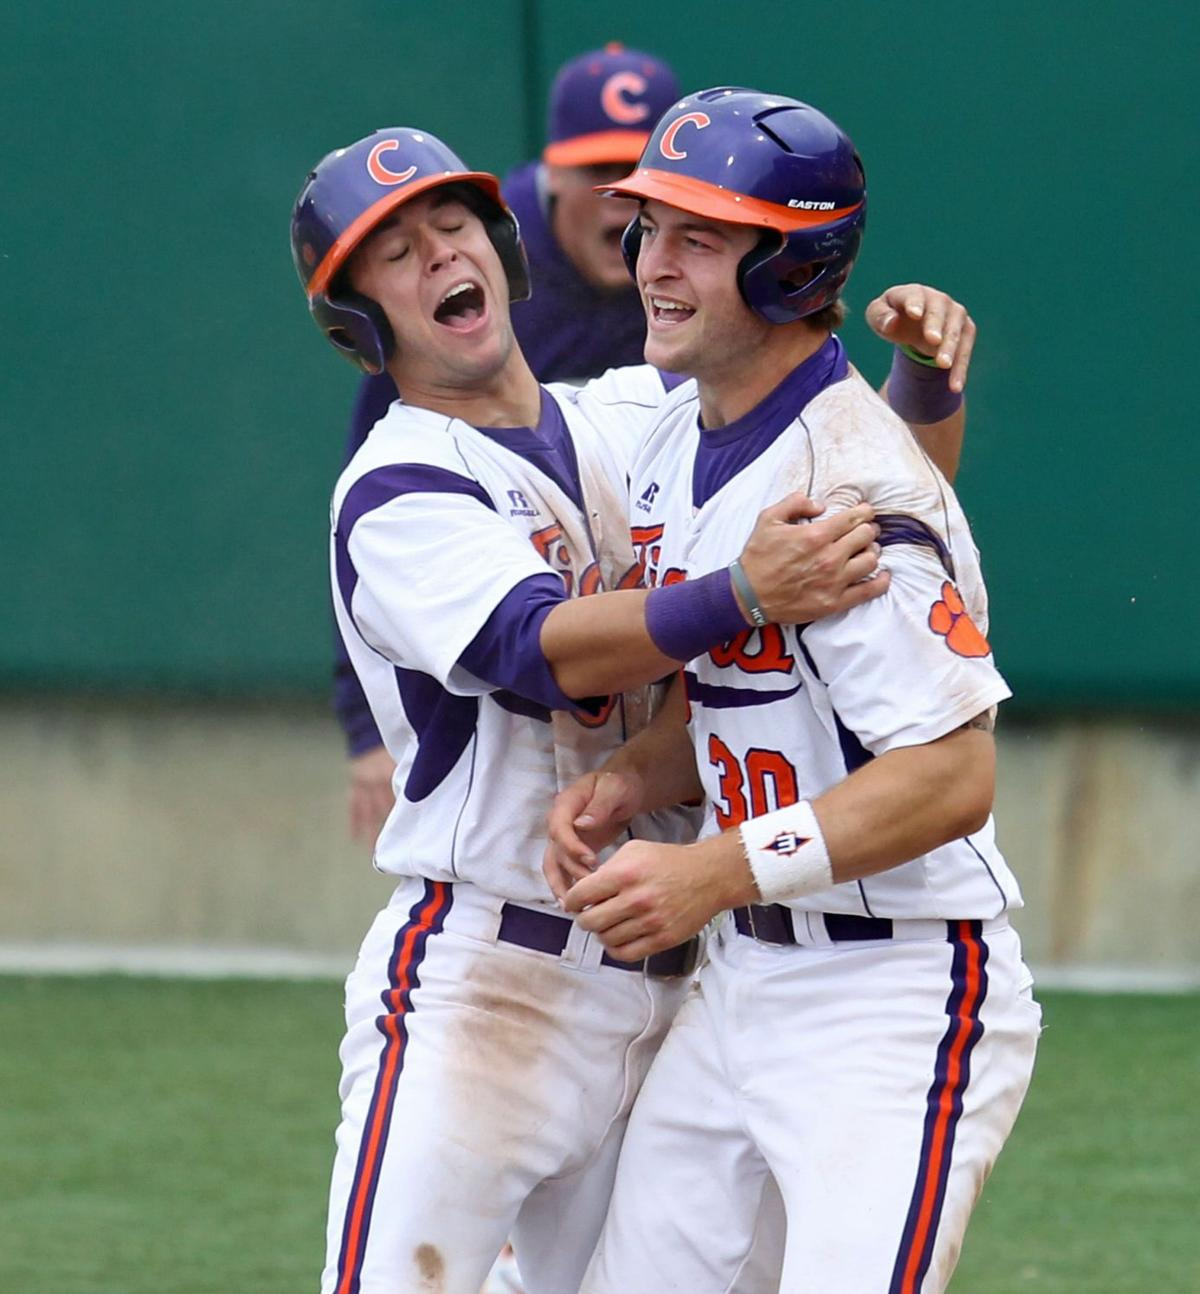 They're in: Clemson barely grabs its 27th NCAA tourney berth in 28 years